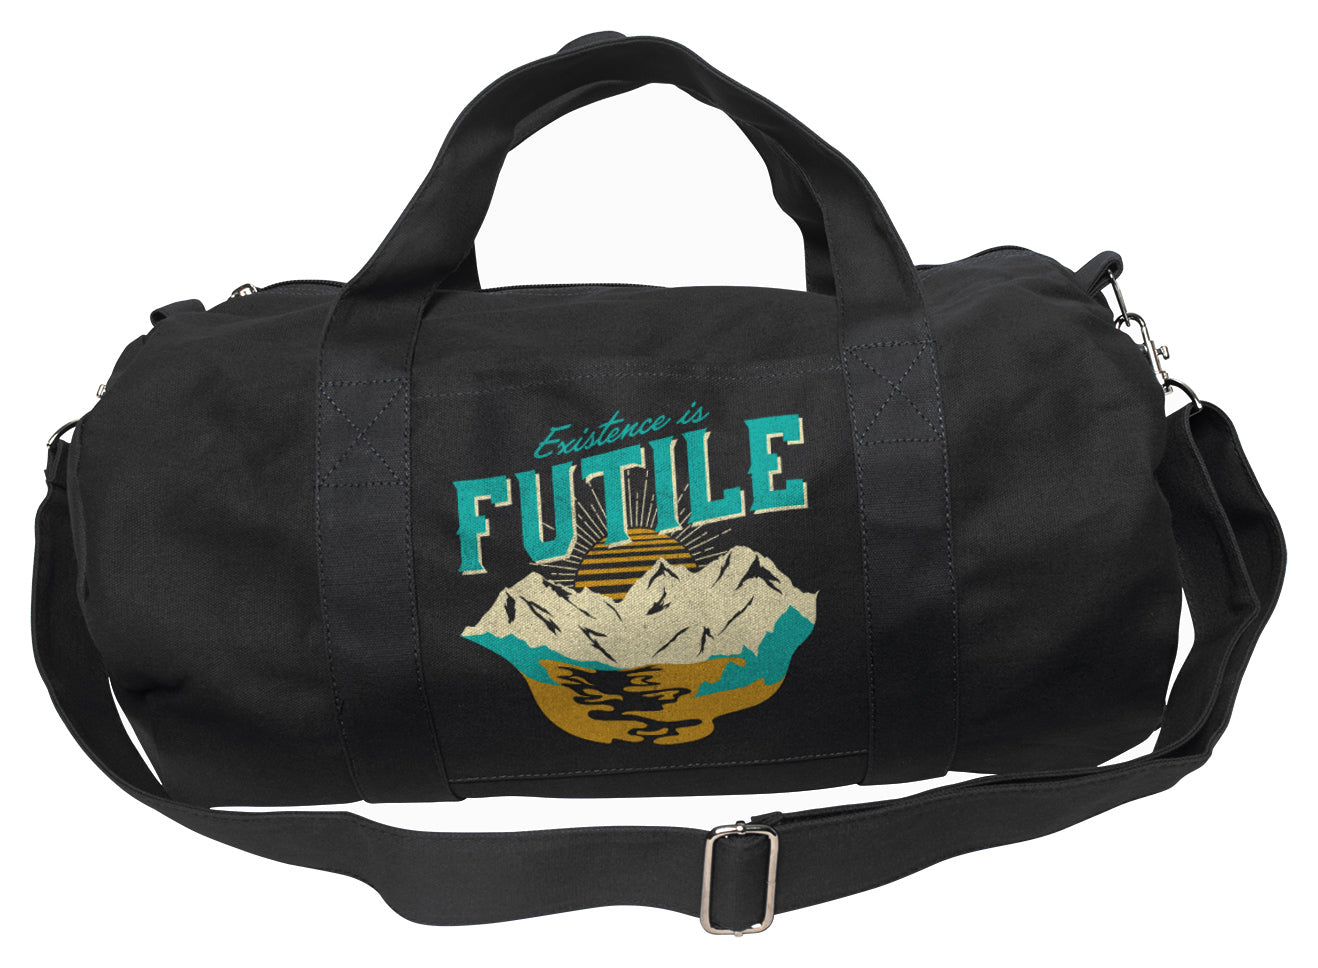 Existence is Futile Duffel Bag